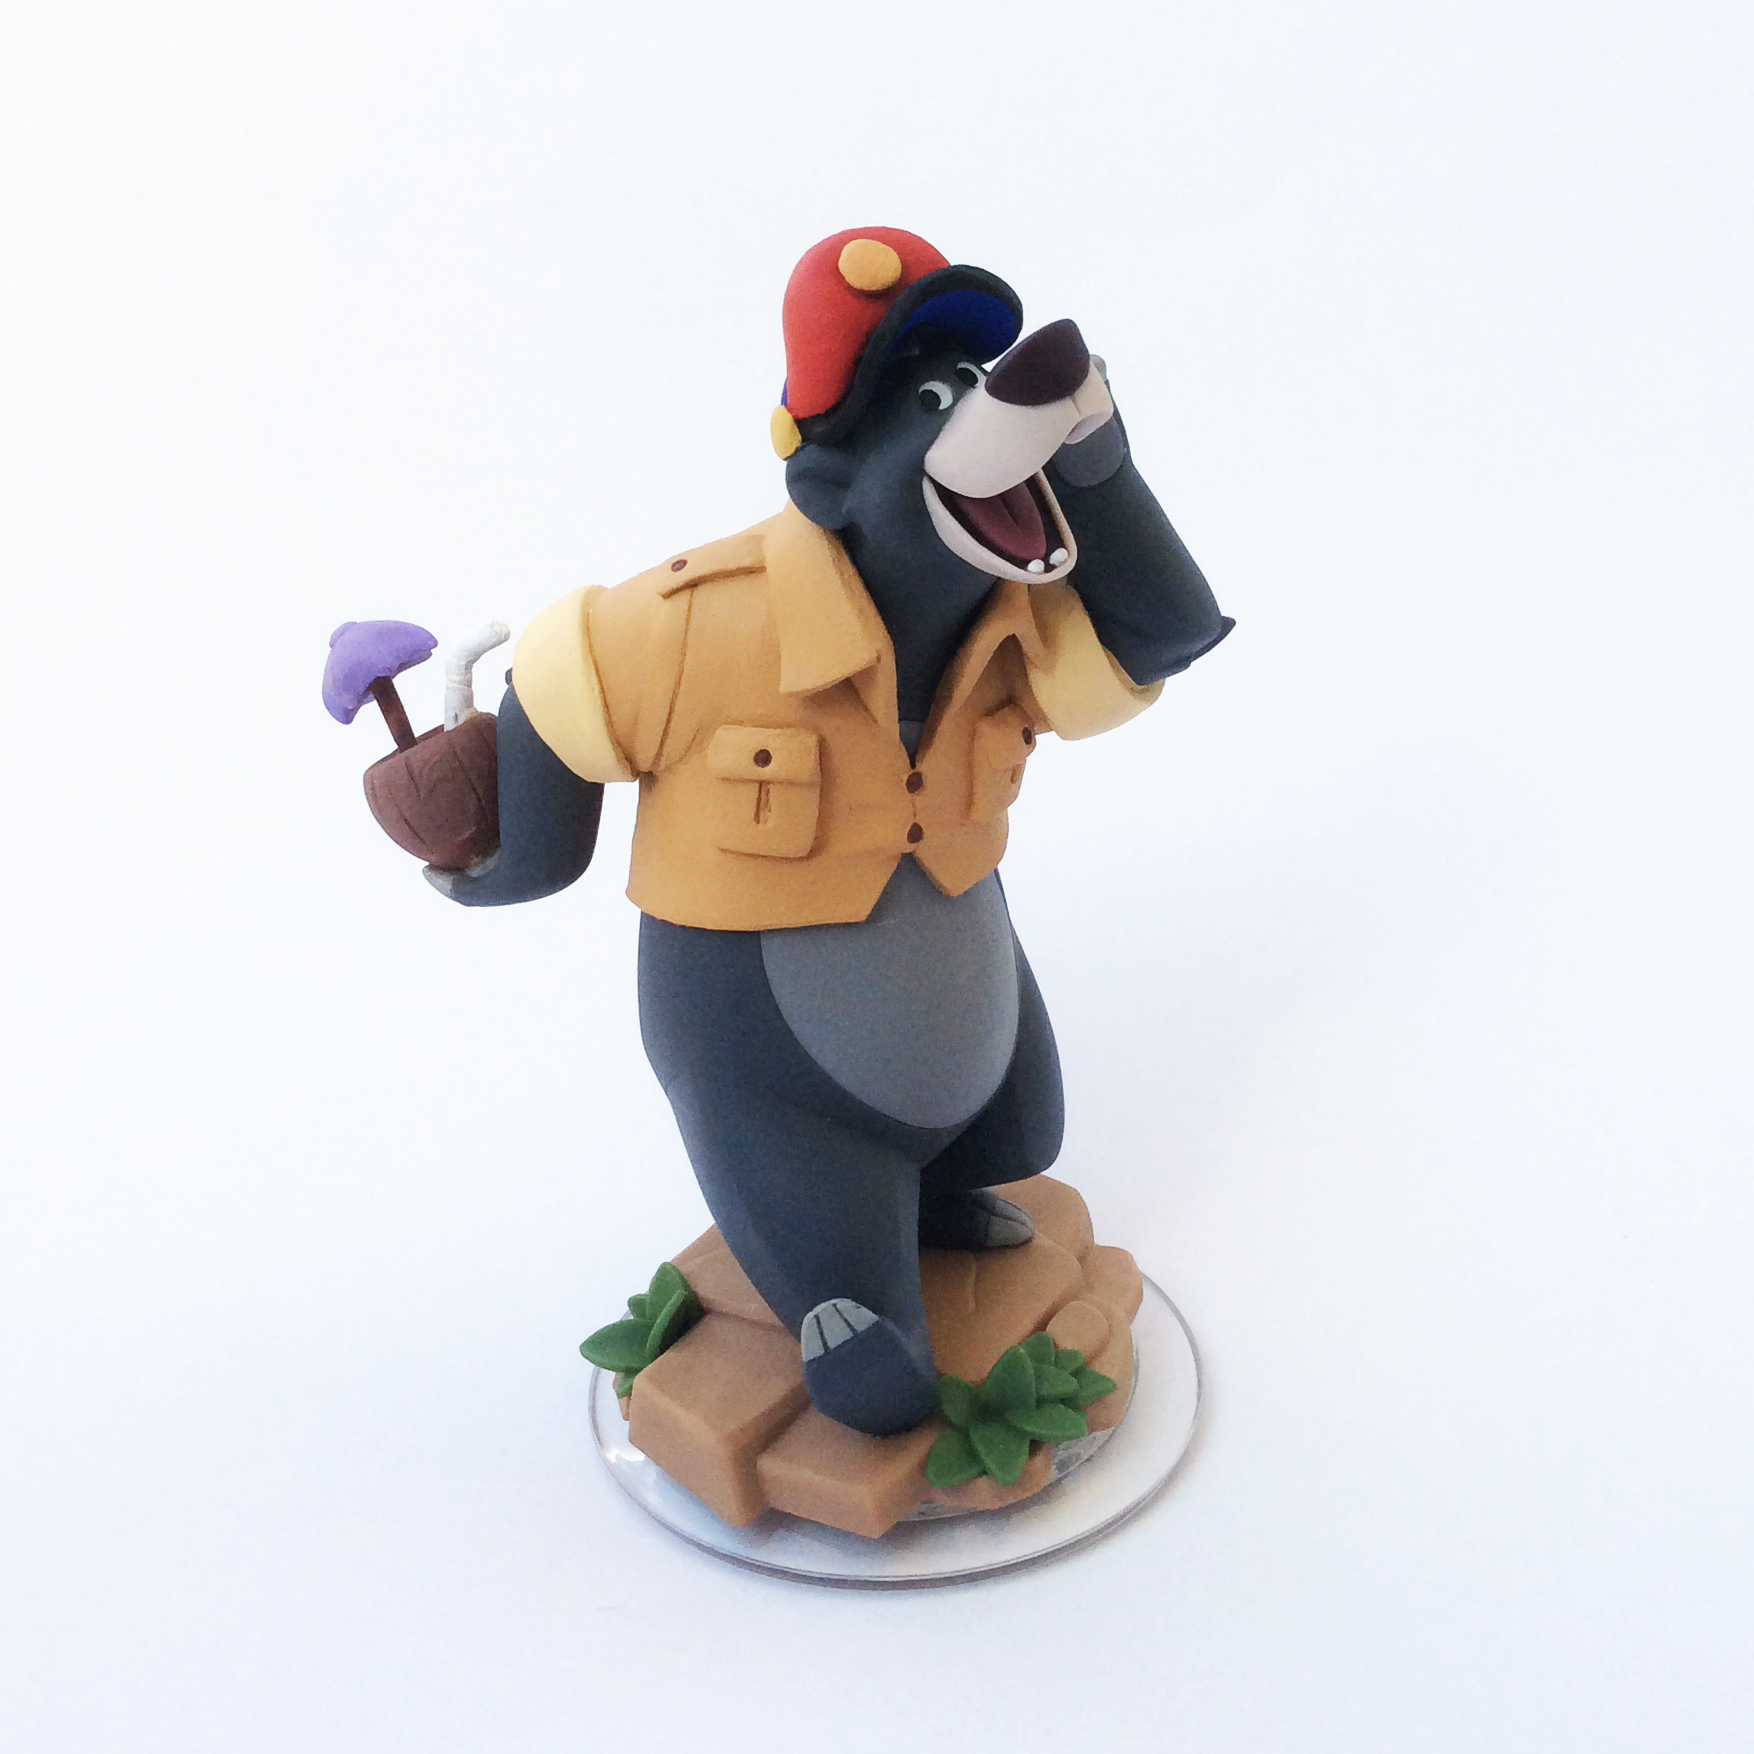 Disney-Infinity-custom-figure-baloo-talespin-by-kirdein-02